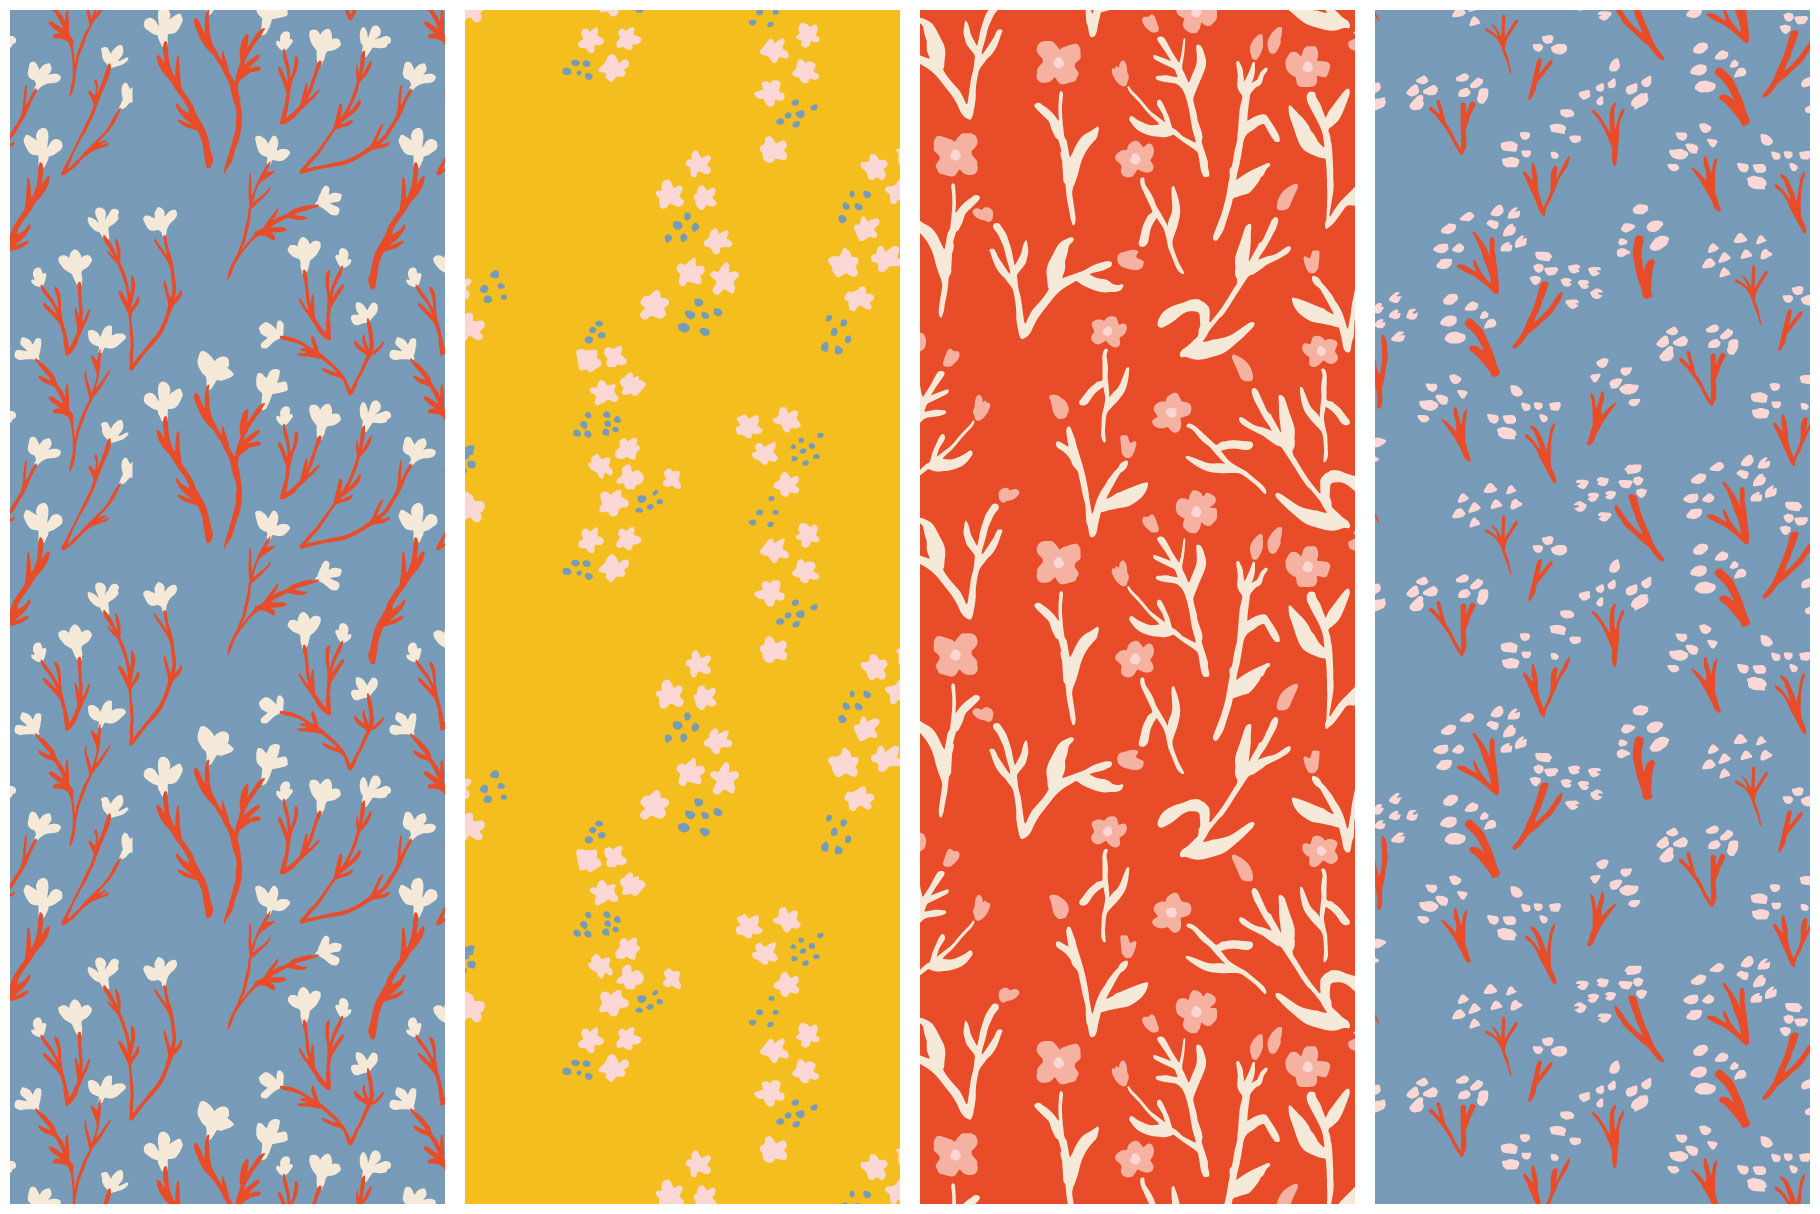 Painted Flower Patterns